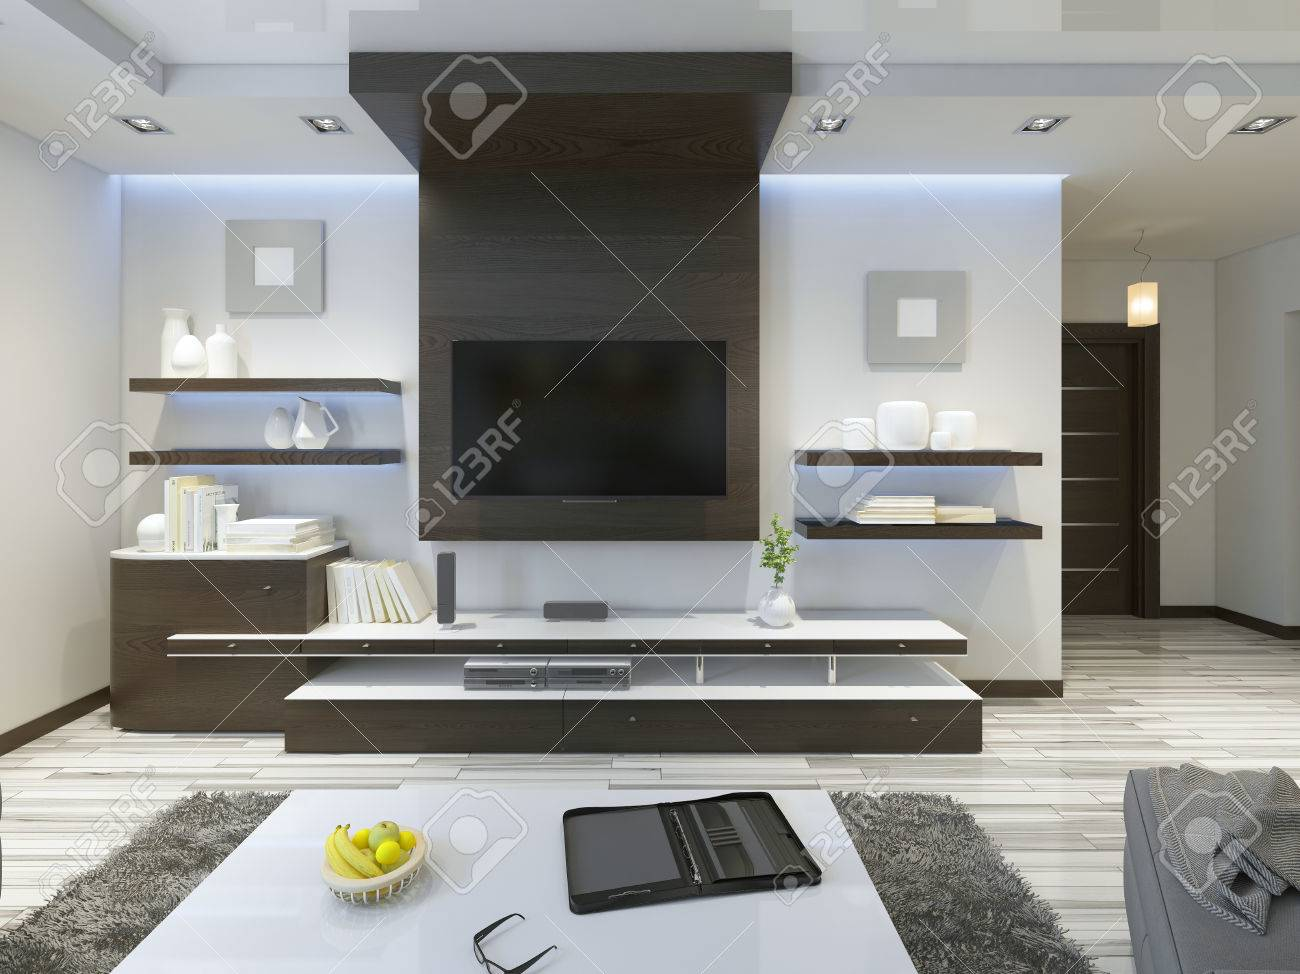 Marvelous Audio System With TV And Shelves In The Living Room Contemporary Style.  Wood Veneering Furniture